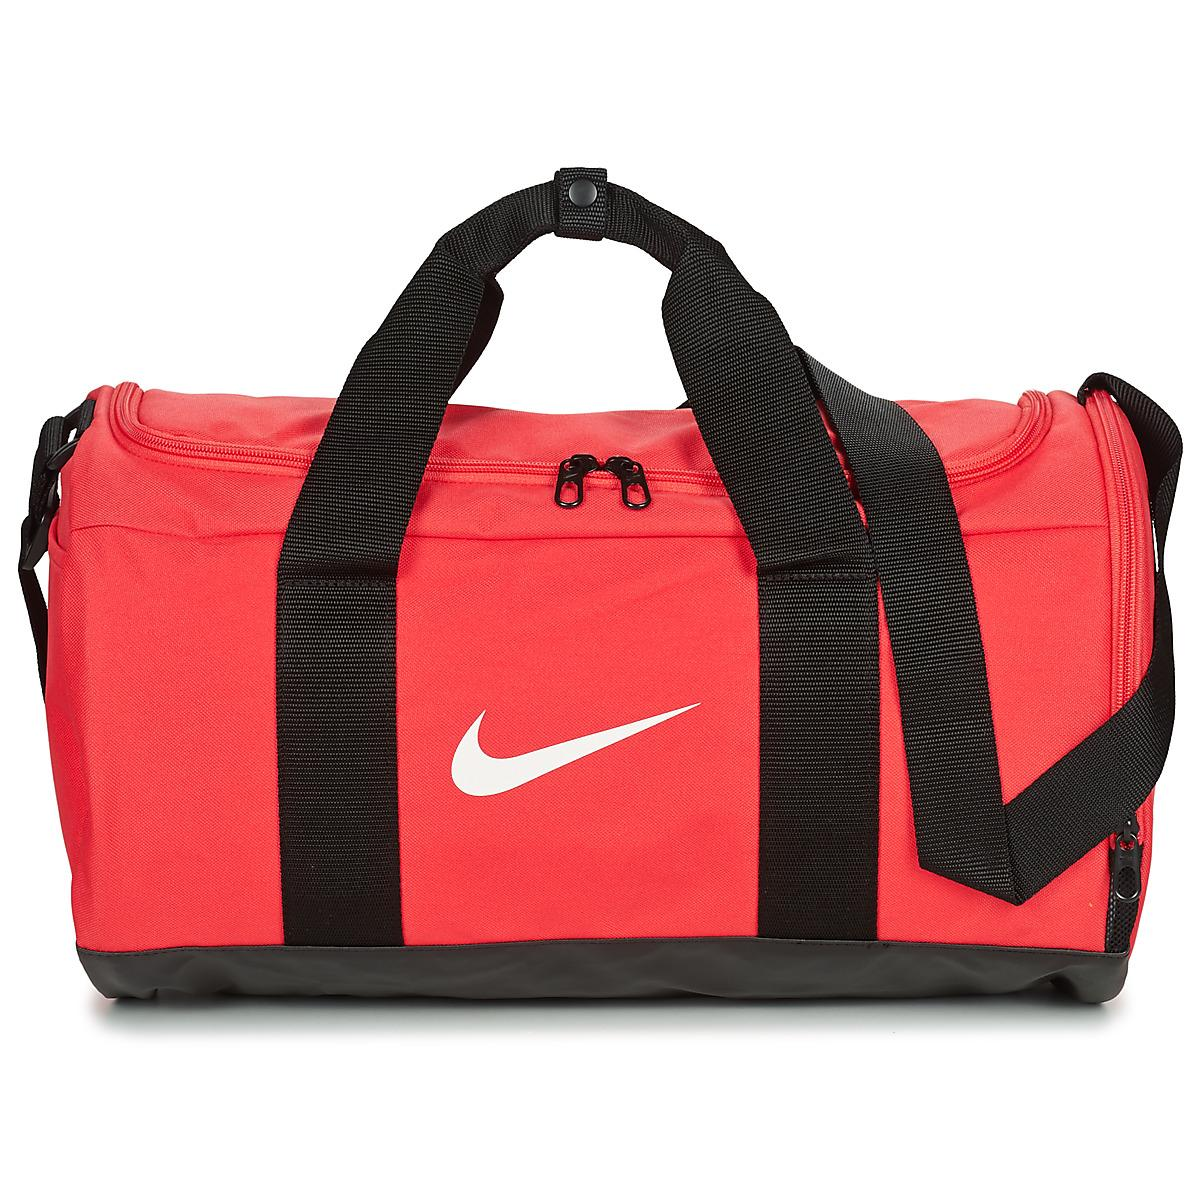 950e36bad696 Nike Team Sports Bag in Red for Men - Lyst